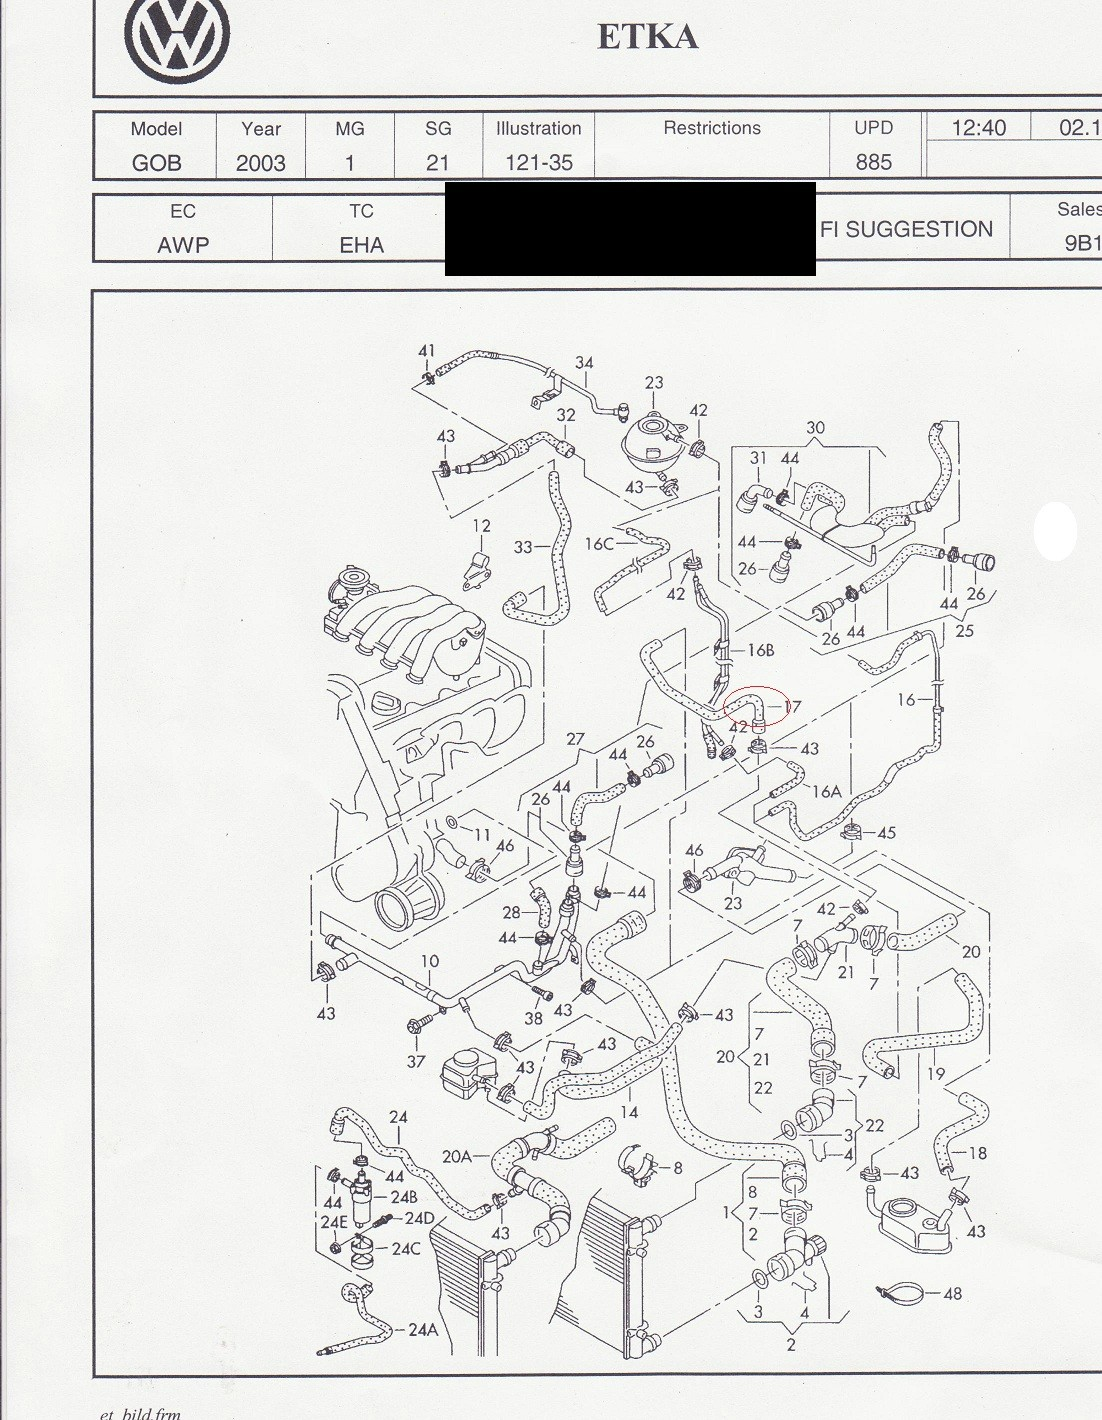 2002 Vw Jetta Tdi Engine Diagram Suzuki 185 Atv Wiring Diagram Nescafe Jeanjaures37 Fr